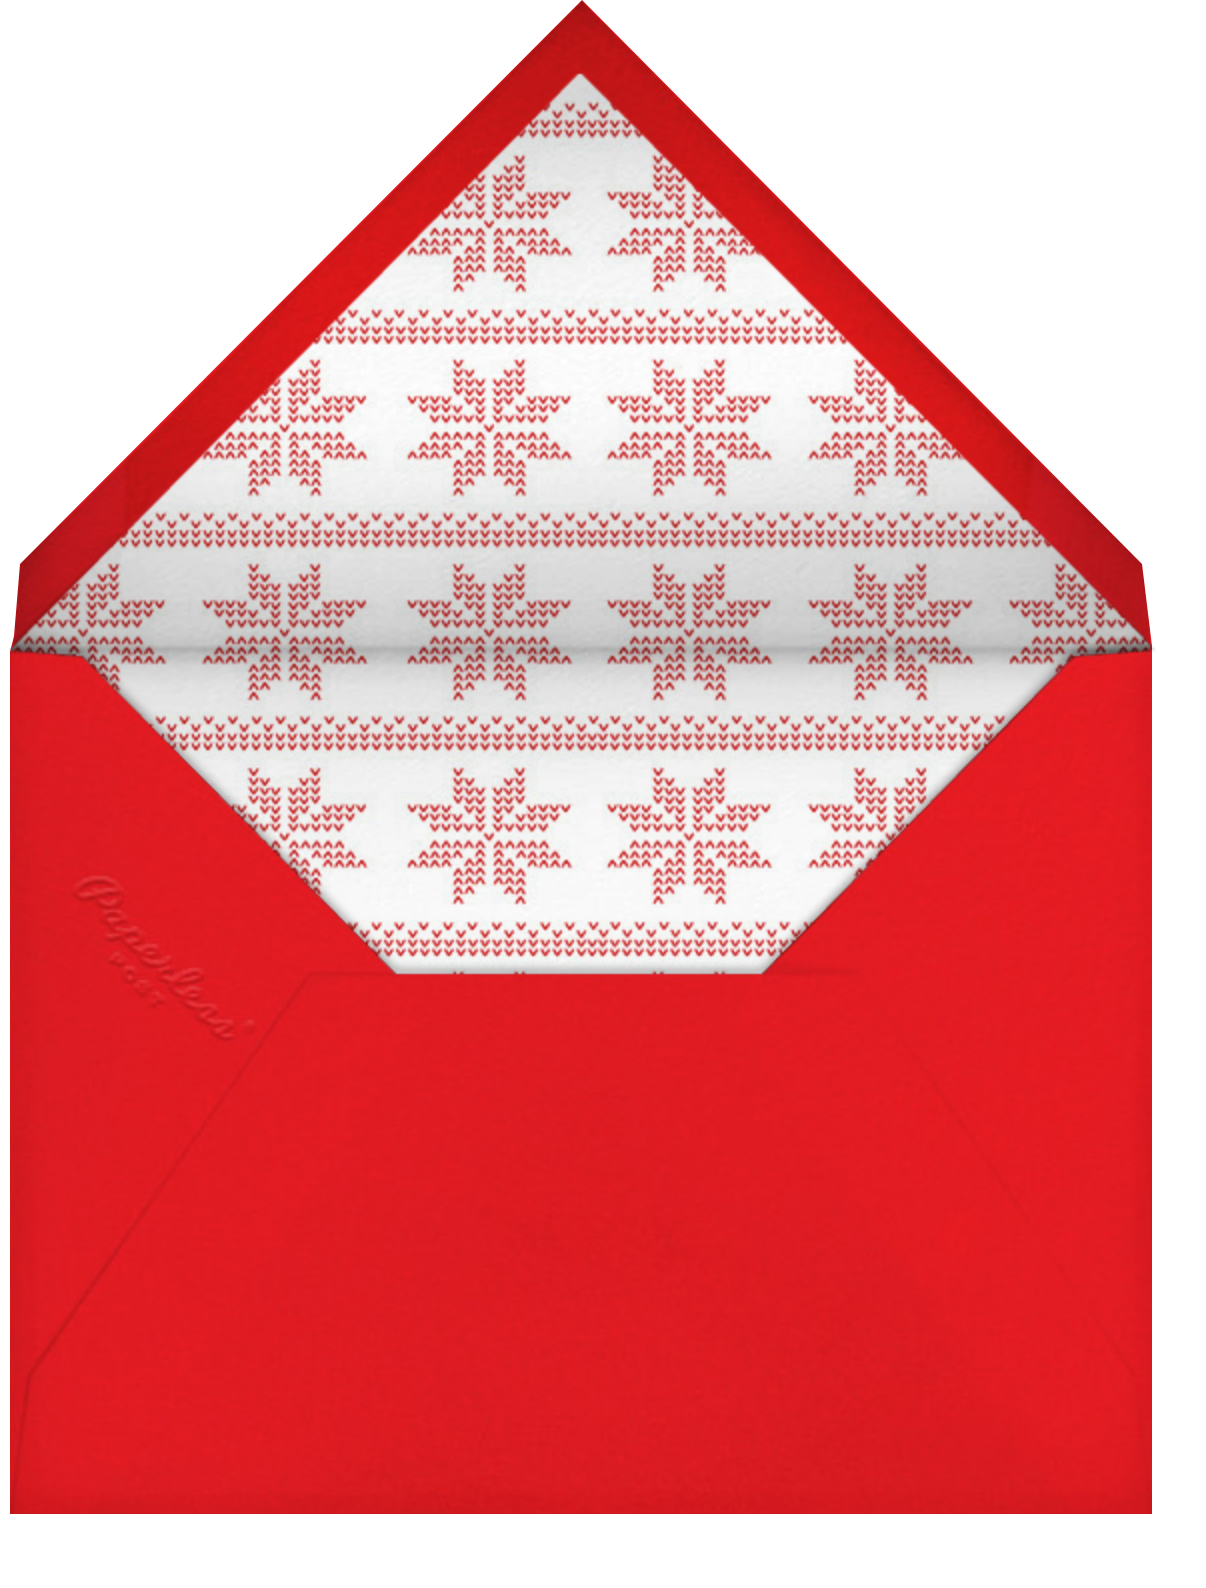 Love Is All Around (3 Photos) - Red - Paperless Post - Holiday cards - envelope back